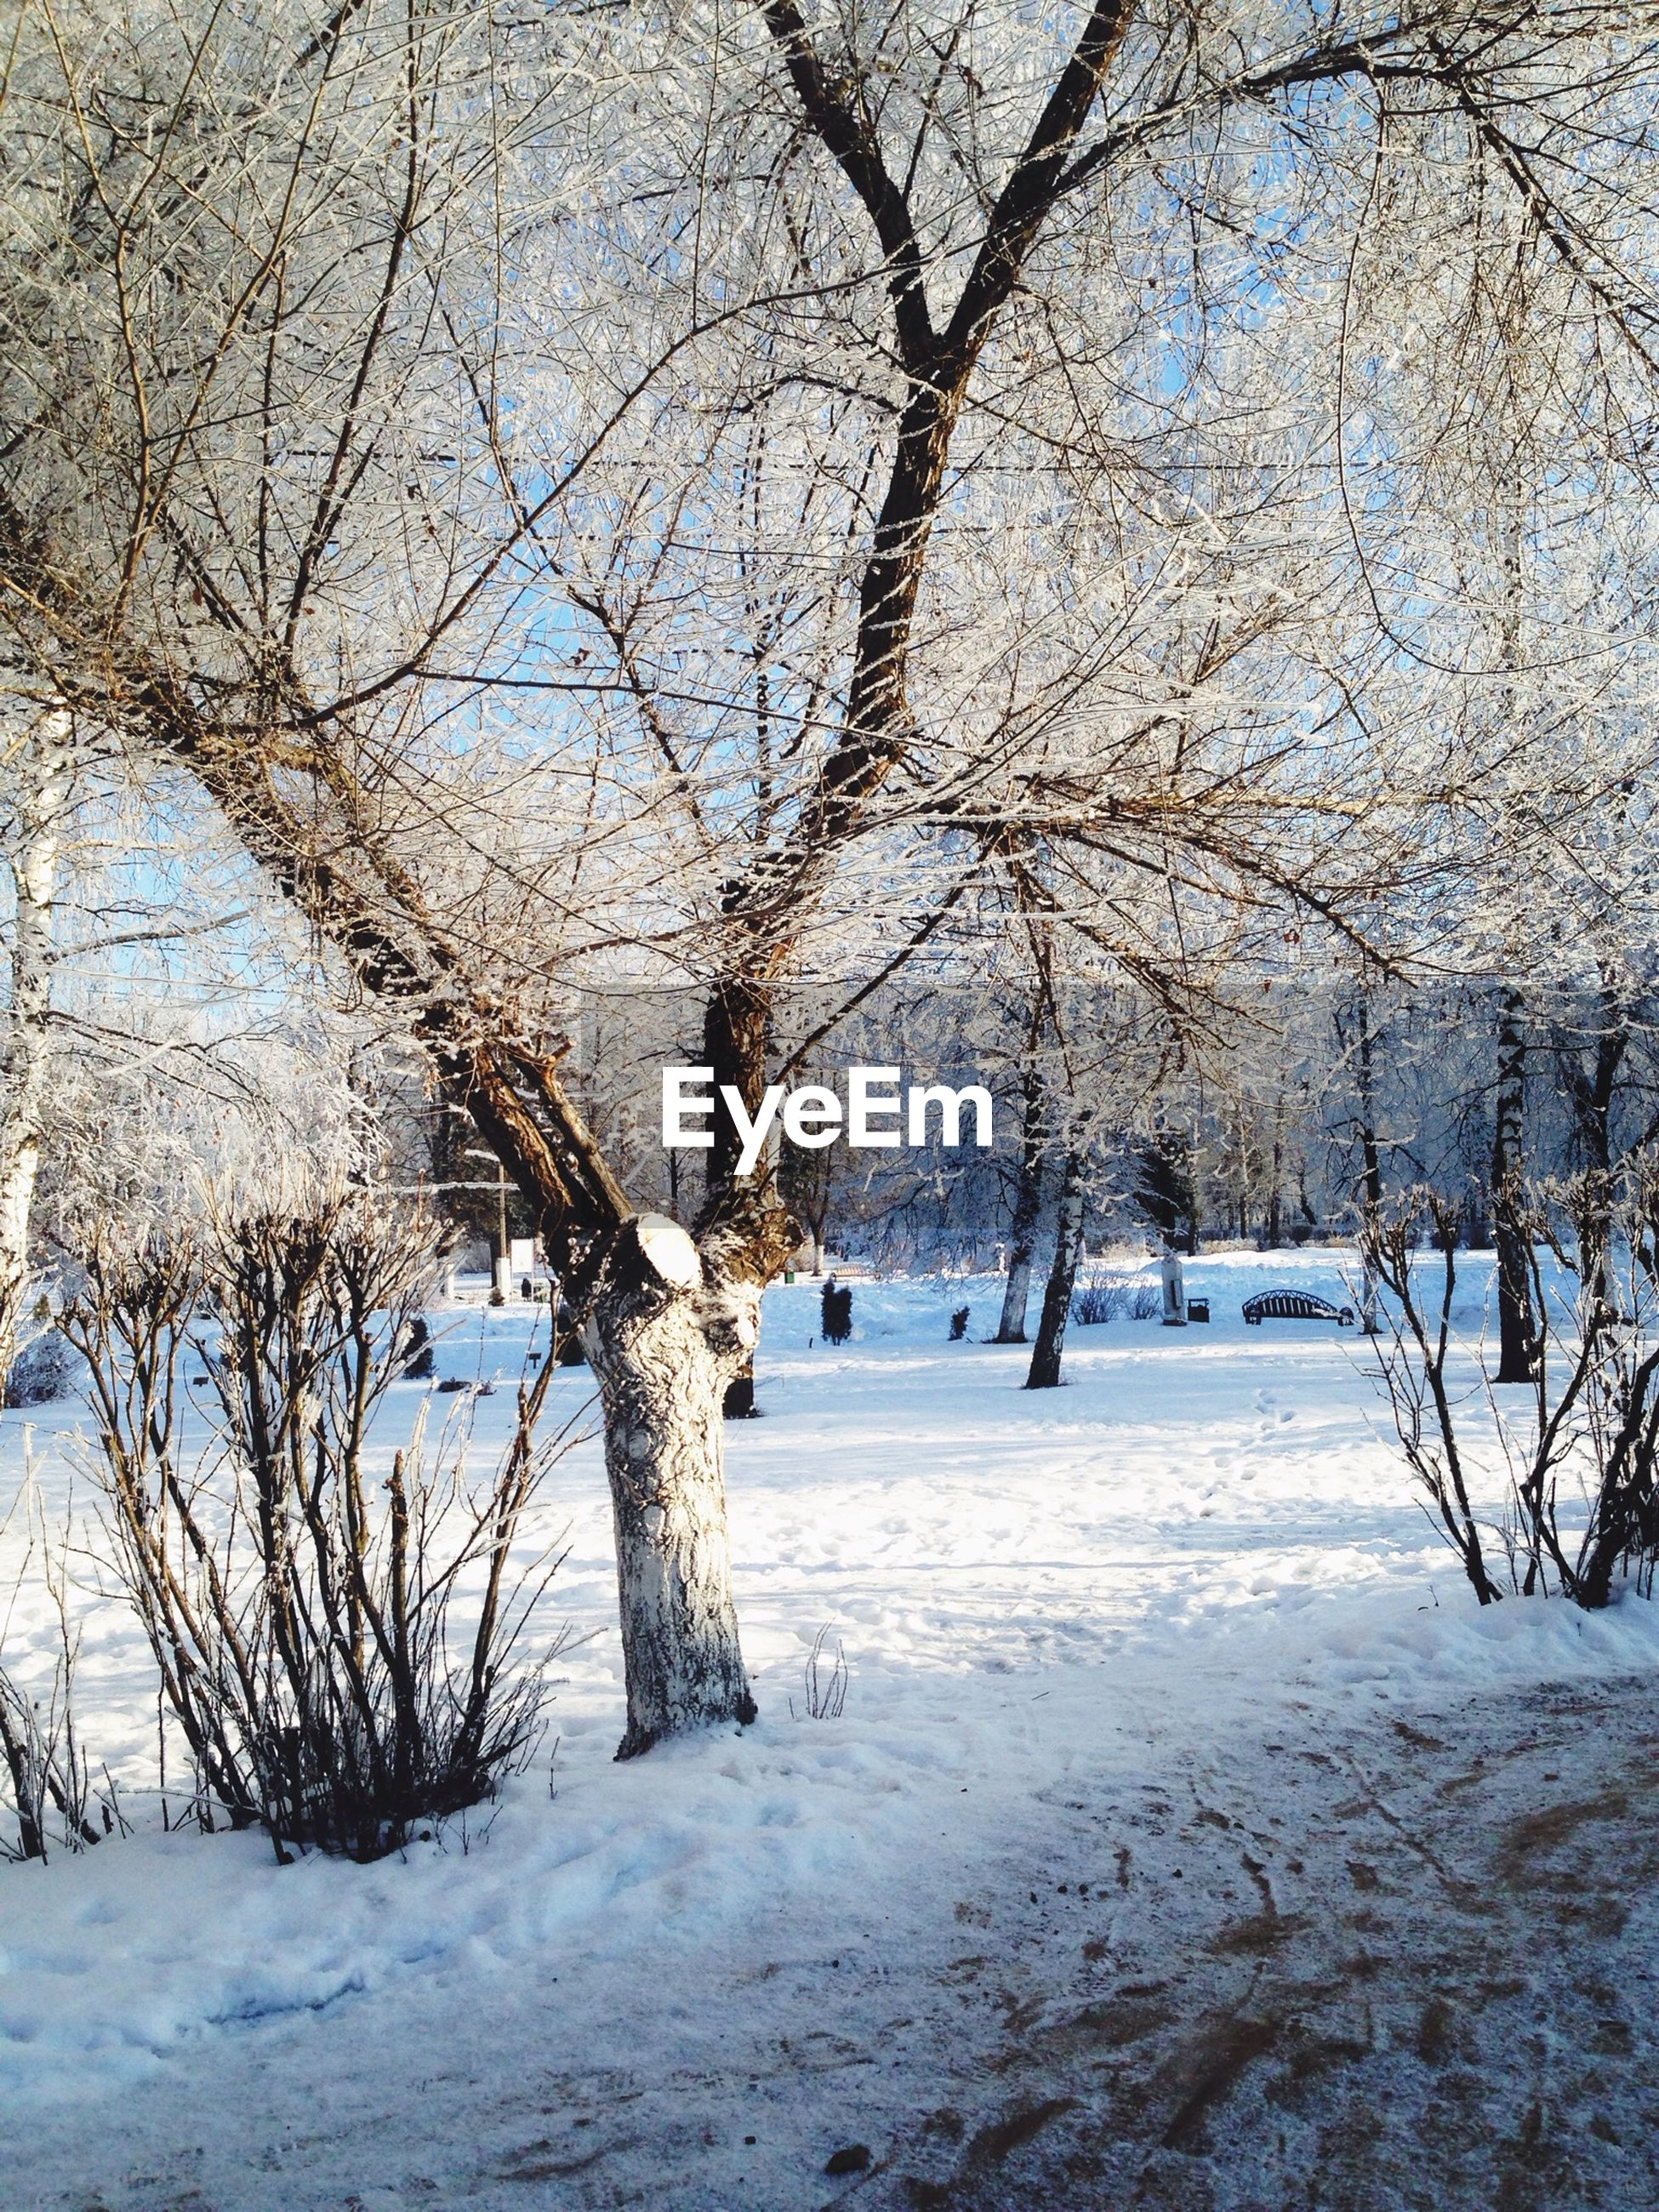 snow, winter, cold temperature, season, weather, covering, bare tree, tree, frozen, branch, white color, nature, field, landscape, covered, tranquility, tranquil scene, beauty in nature, cold, snow covered